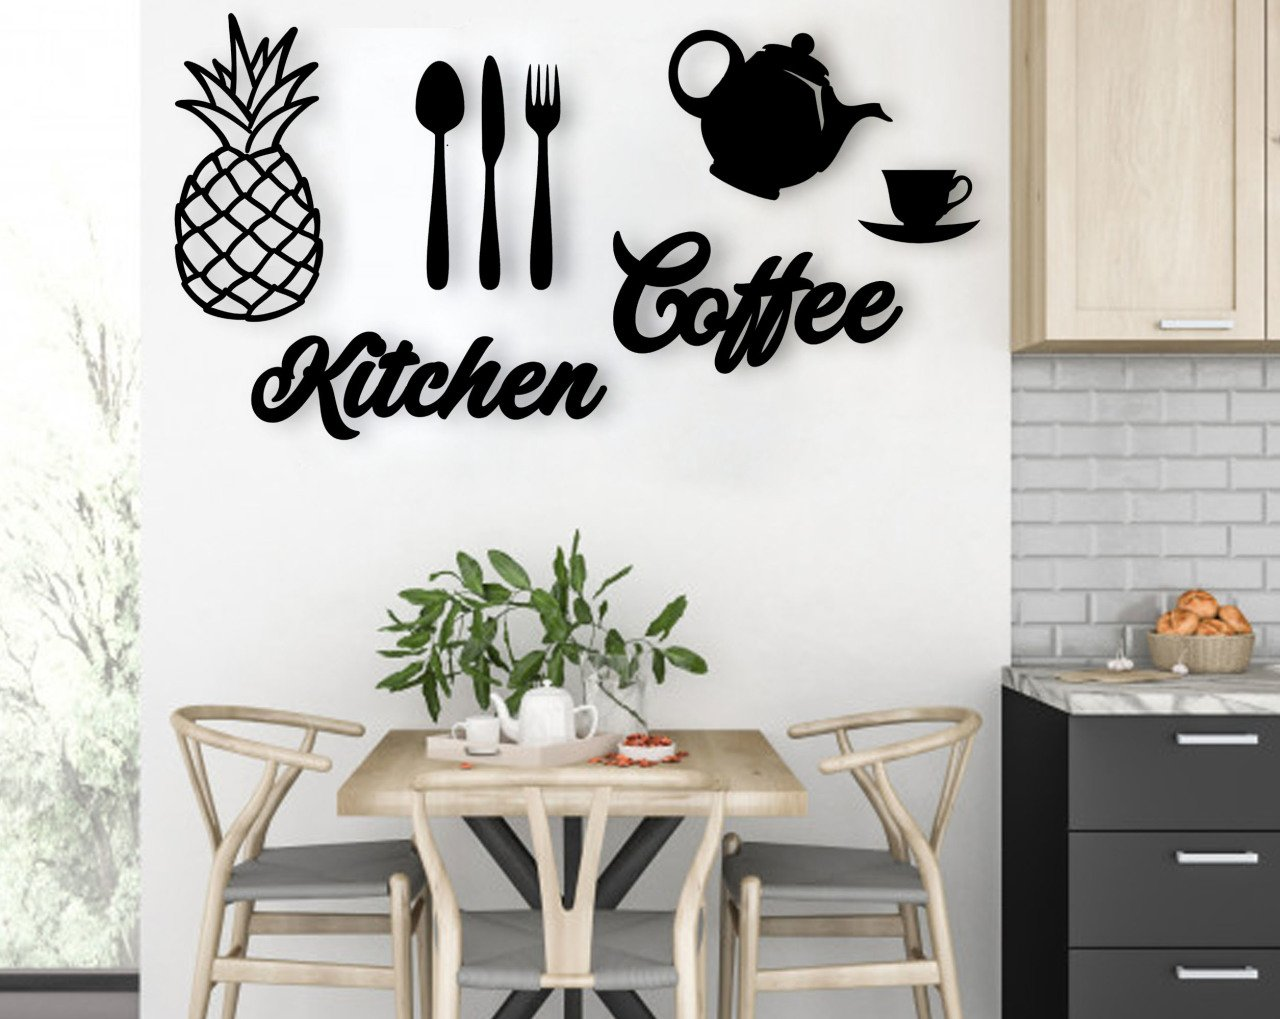 BK Home Kitchen Coffee Wood Wall Post Modern Convenient Reliable Decoration Gift Quality Design Simple Cool Black Color